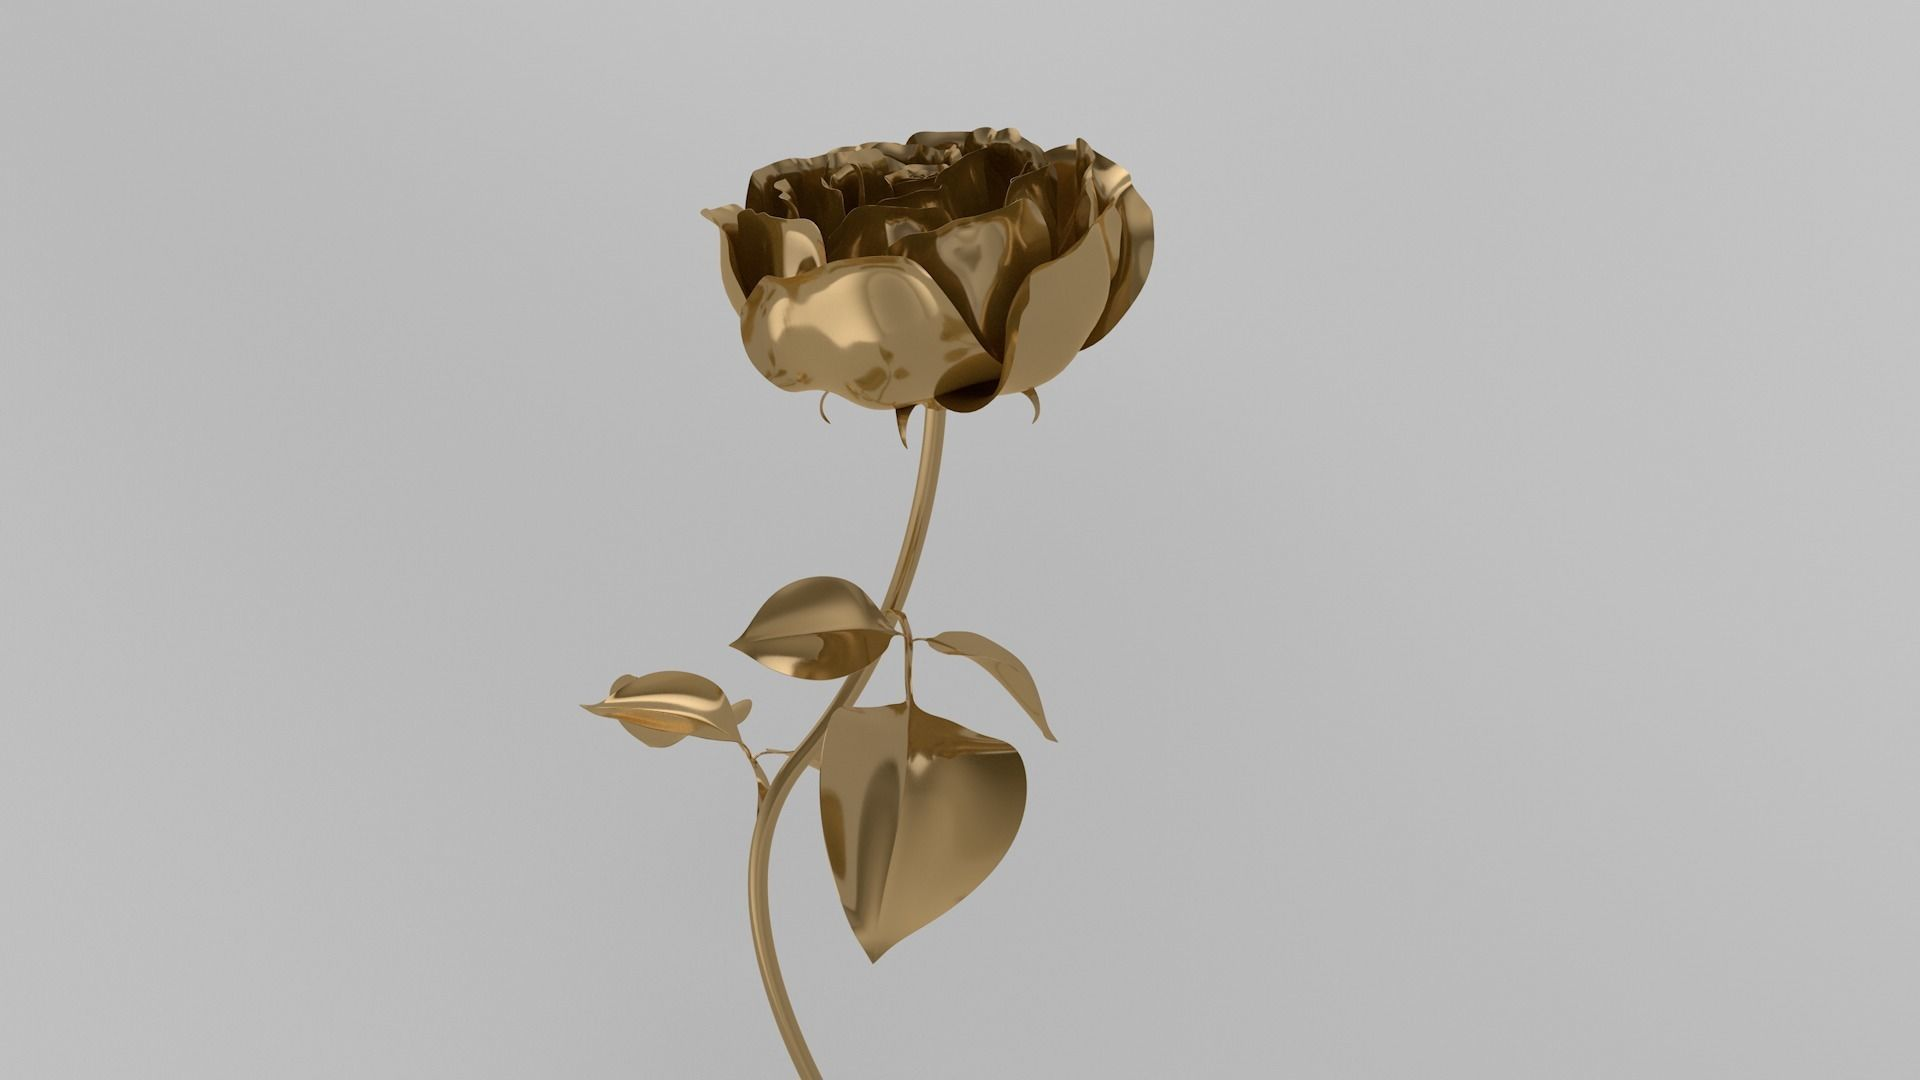 Golden Rose animation